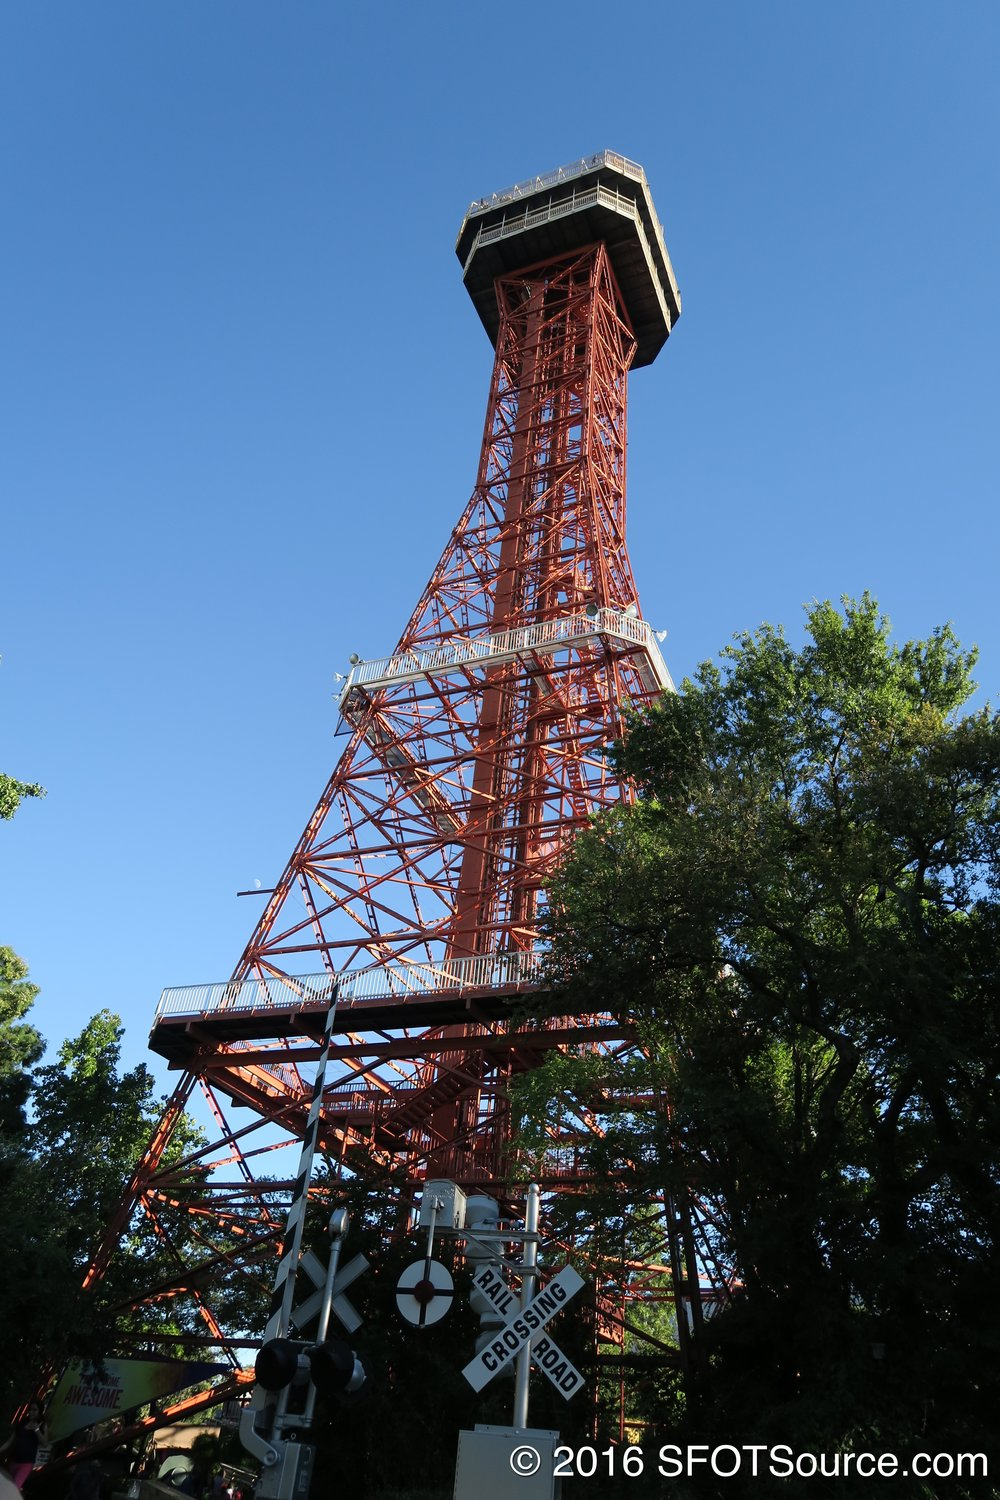 Oil Derrick is located in the Tower section.